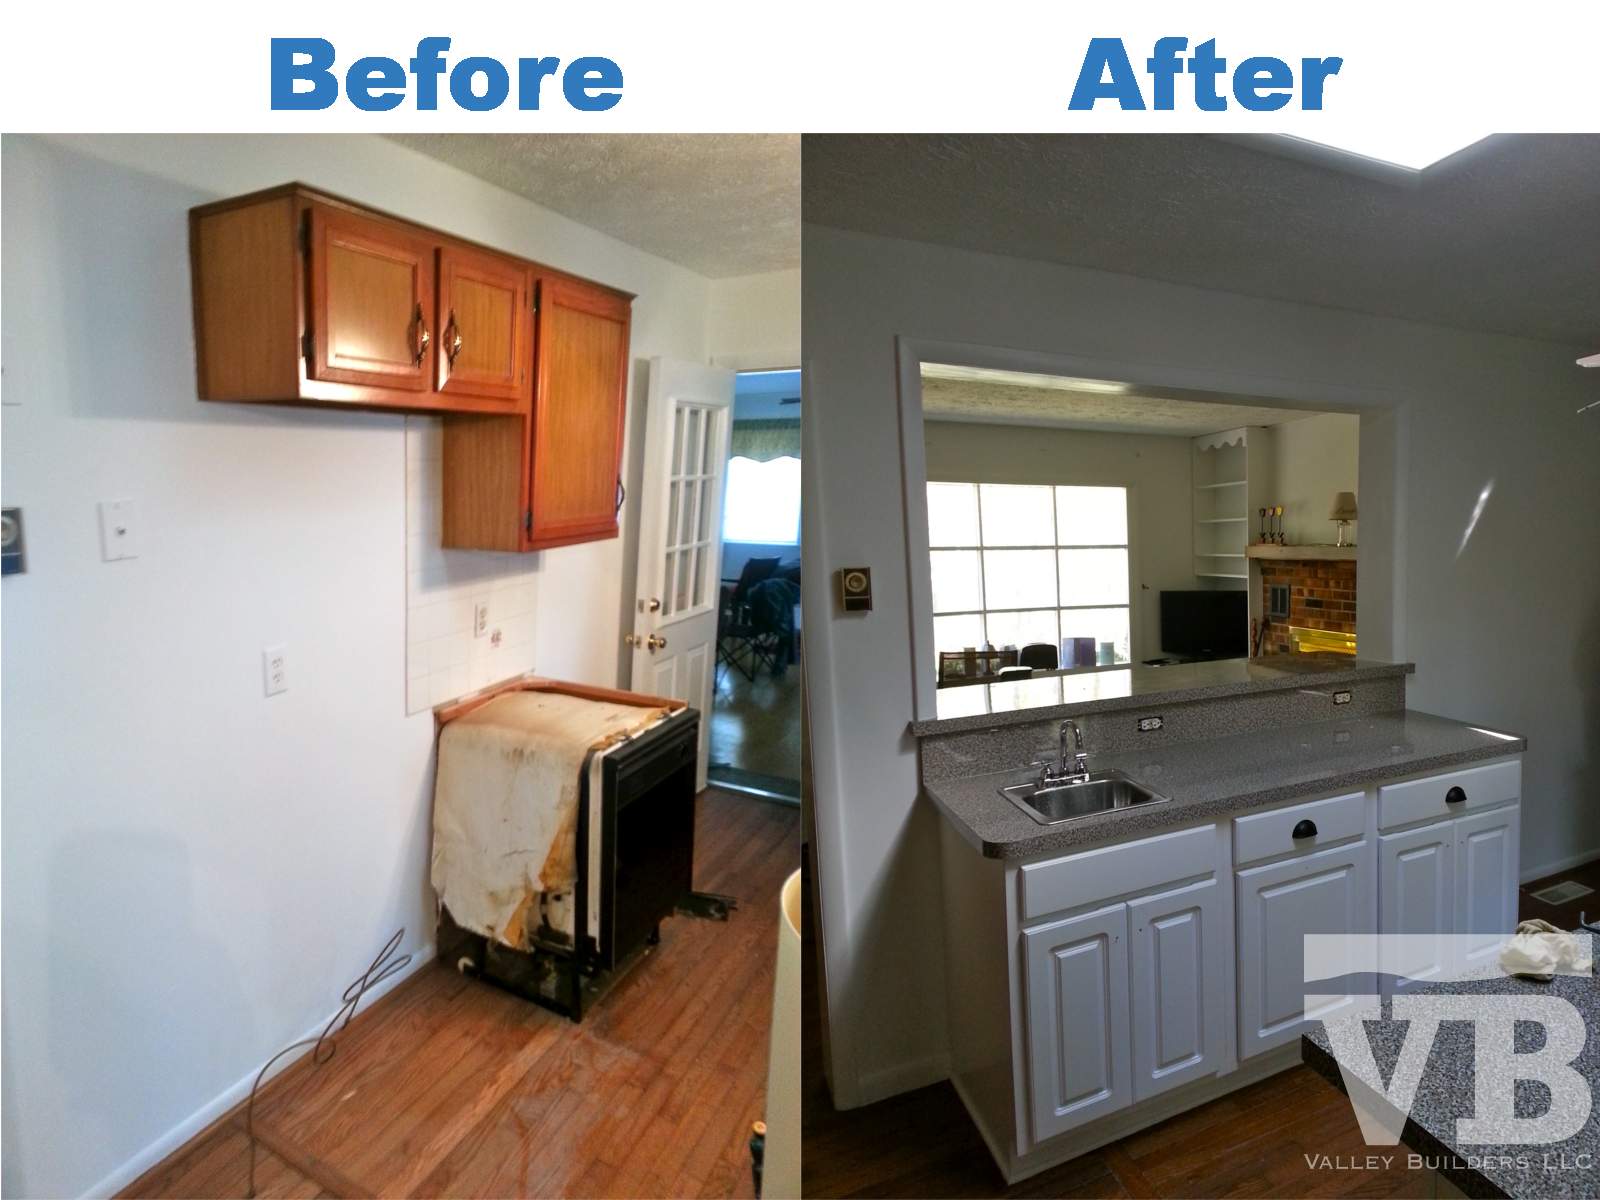 Modern Kitchen Remodel Before And After kitchen remodel before and after ~ picgit